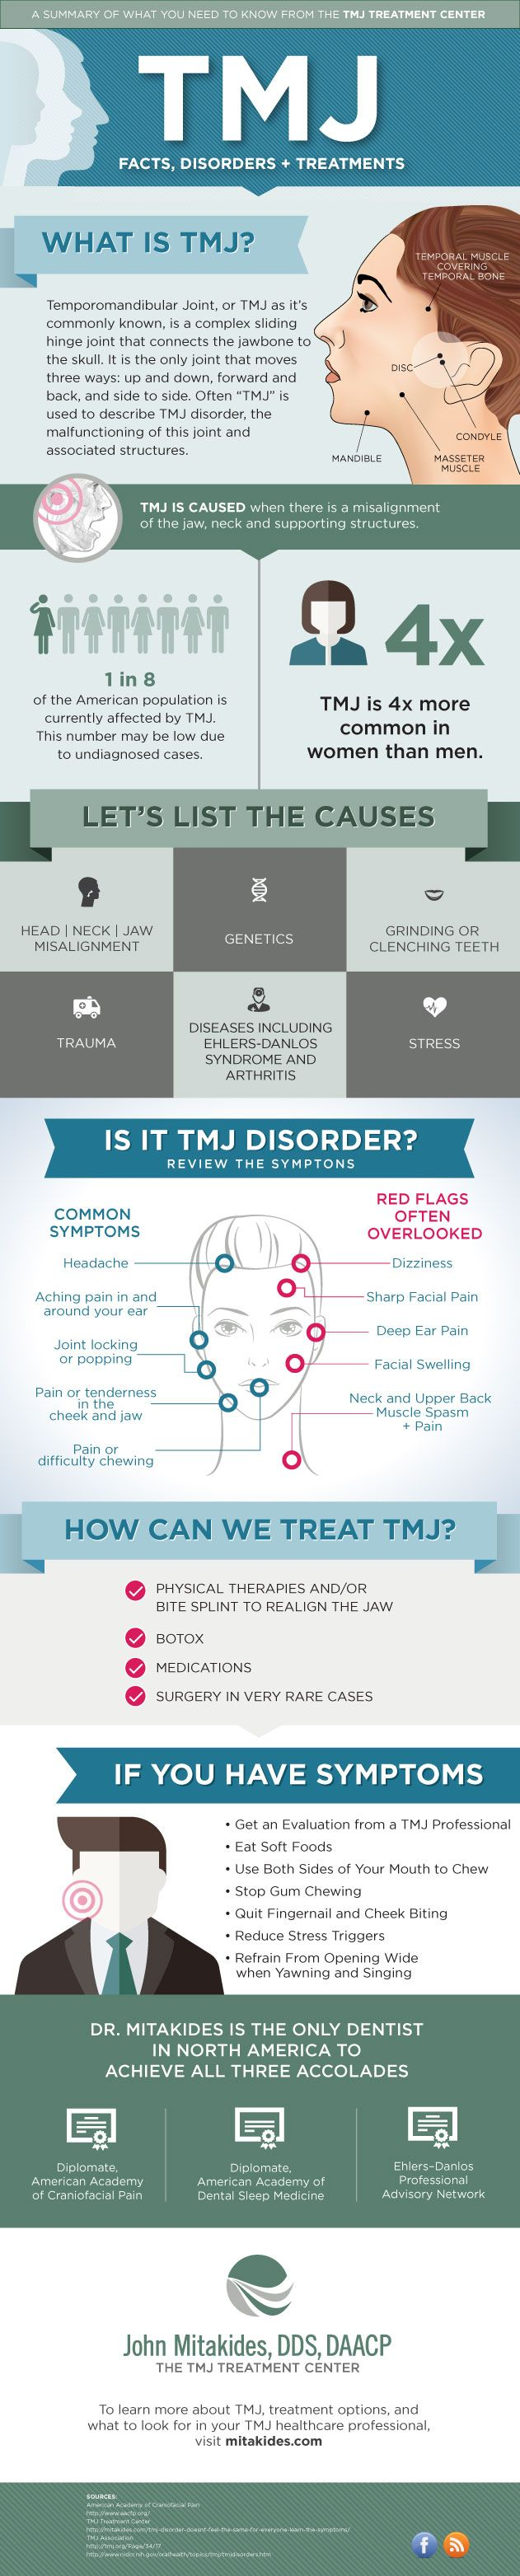 Information on TMJ #CosmeticDentistry #CosmeticDentist #Dentistry #Dentist #AustinTexas #Austin #AustinTX #ATX #Smile #SmileMore #SmileEveryday